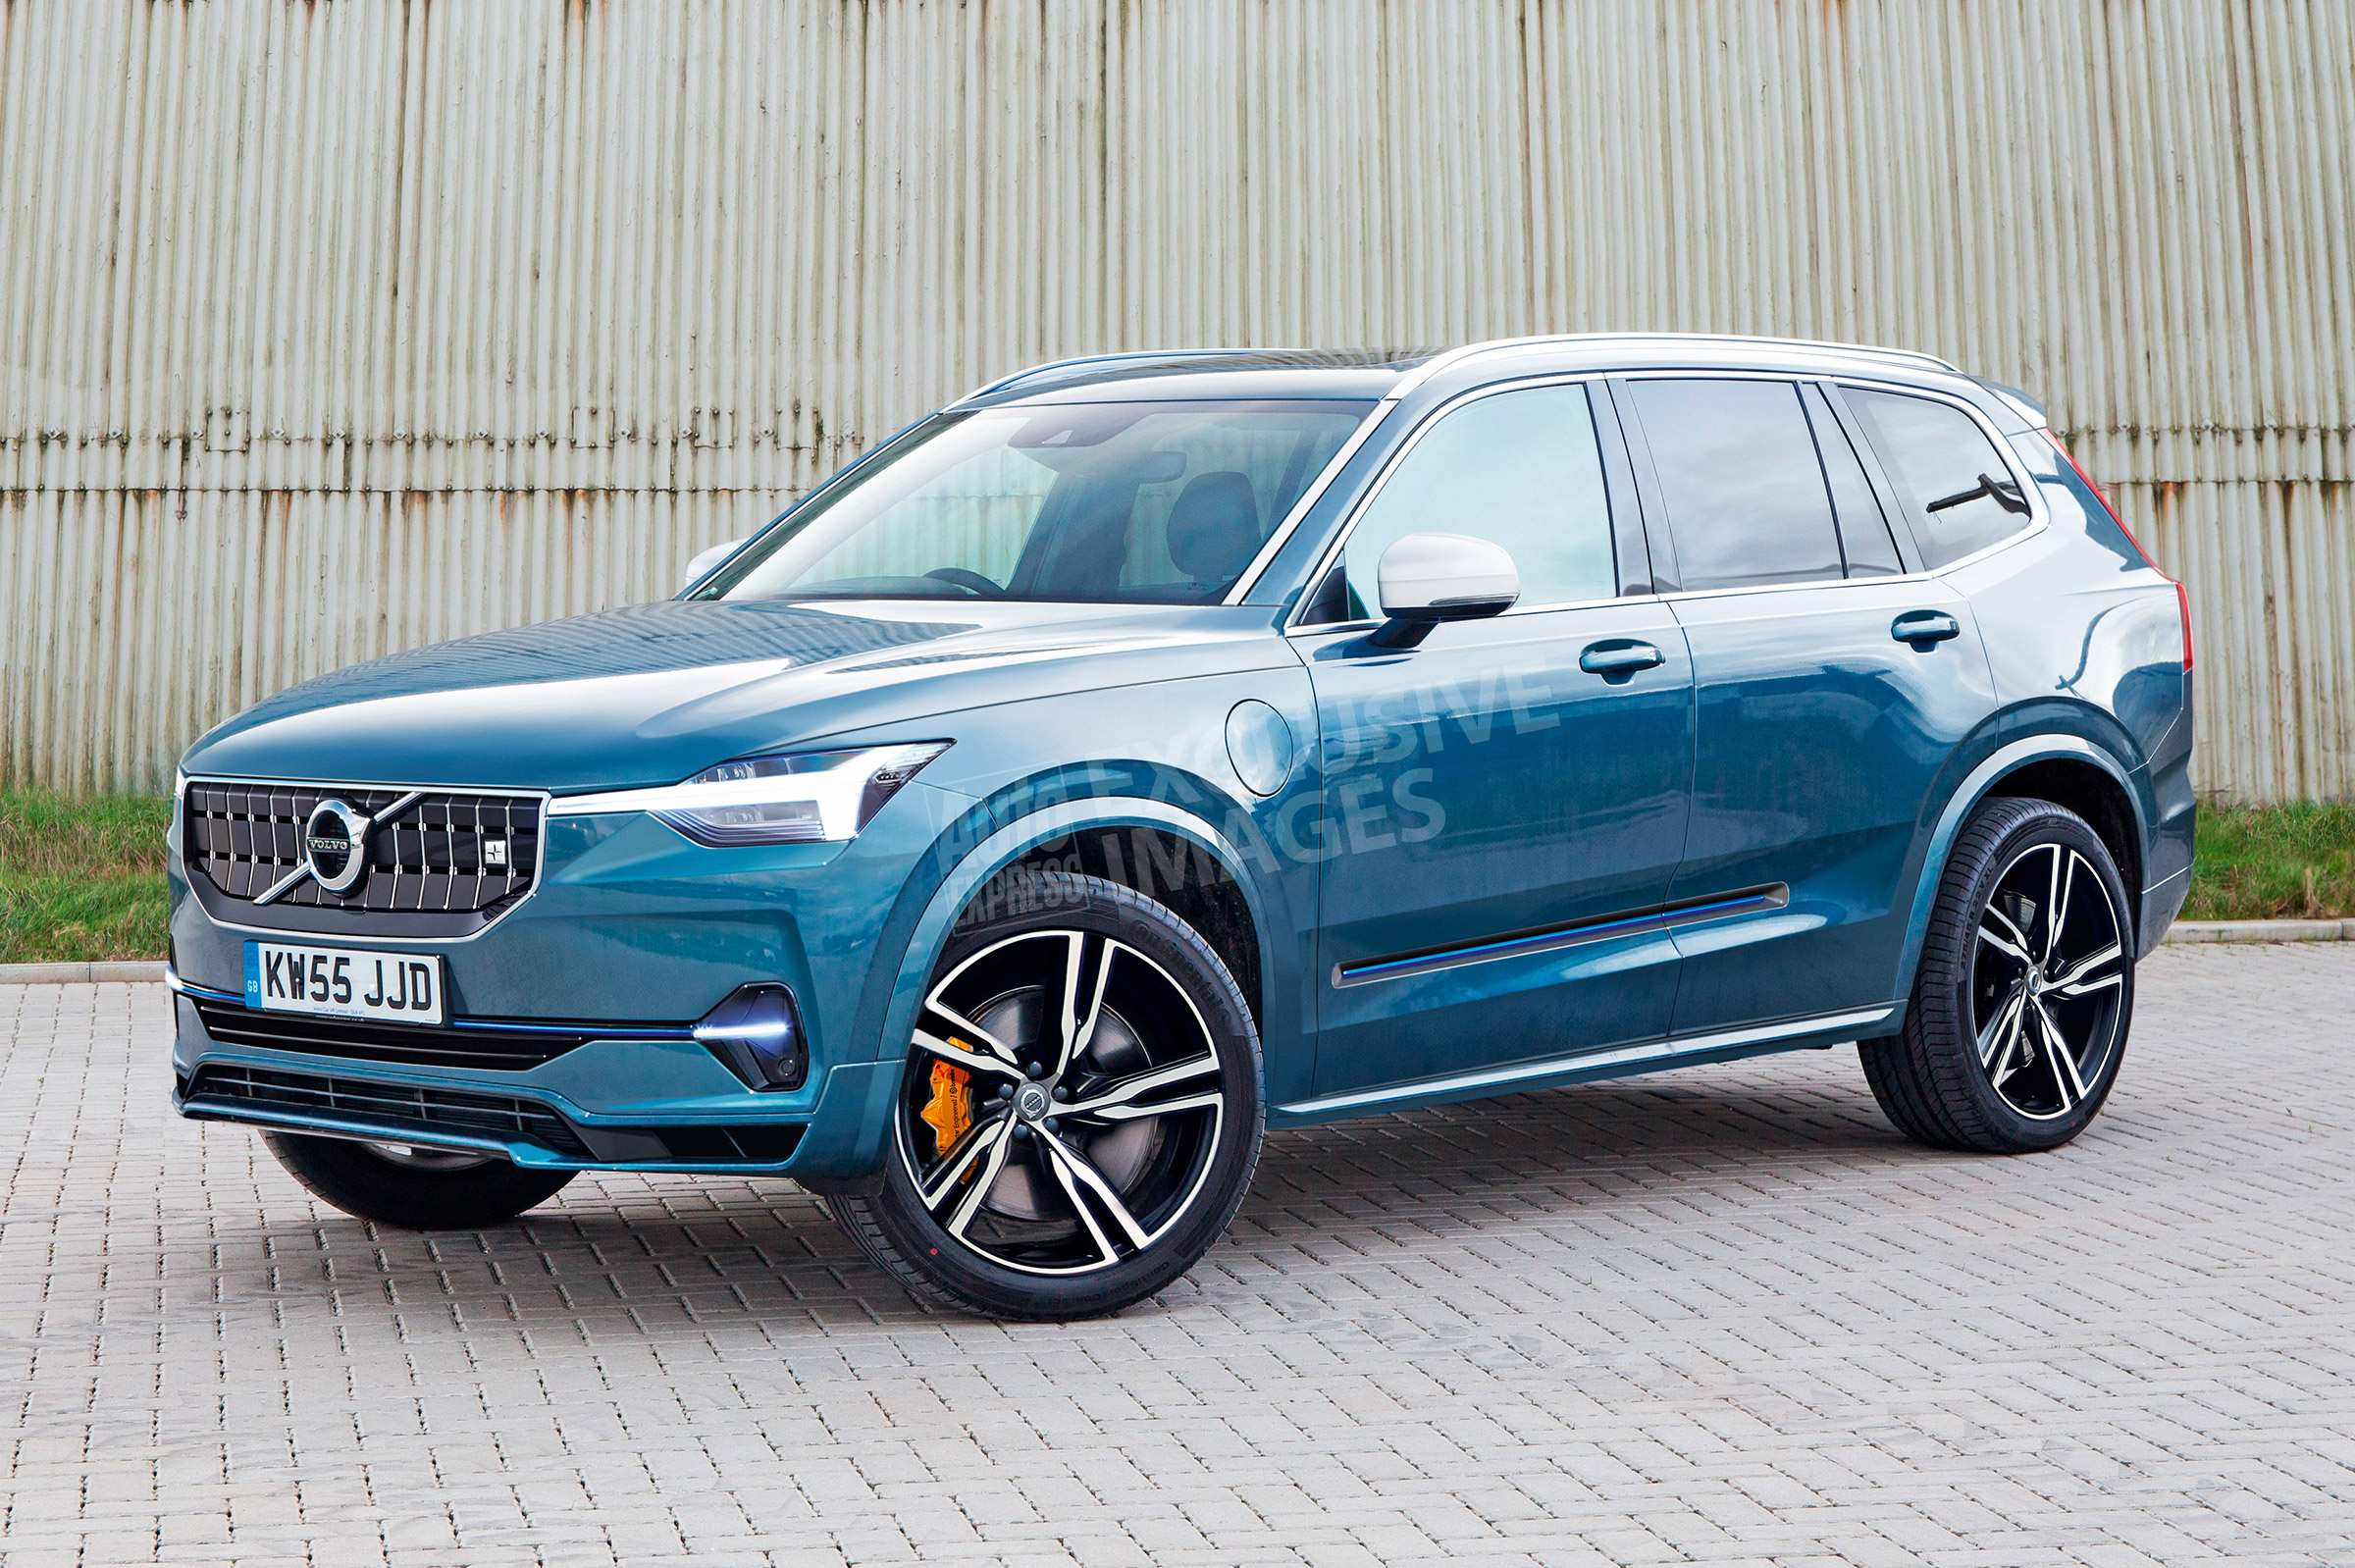 61 All New When Is The 2020 Volvo Xc90 Coming Out Spesification by When Is The 2020 Volvo Xc90 Coming Out